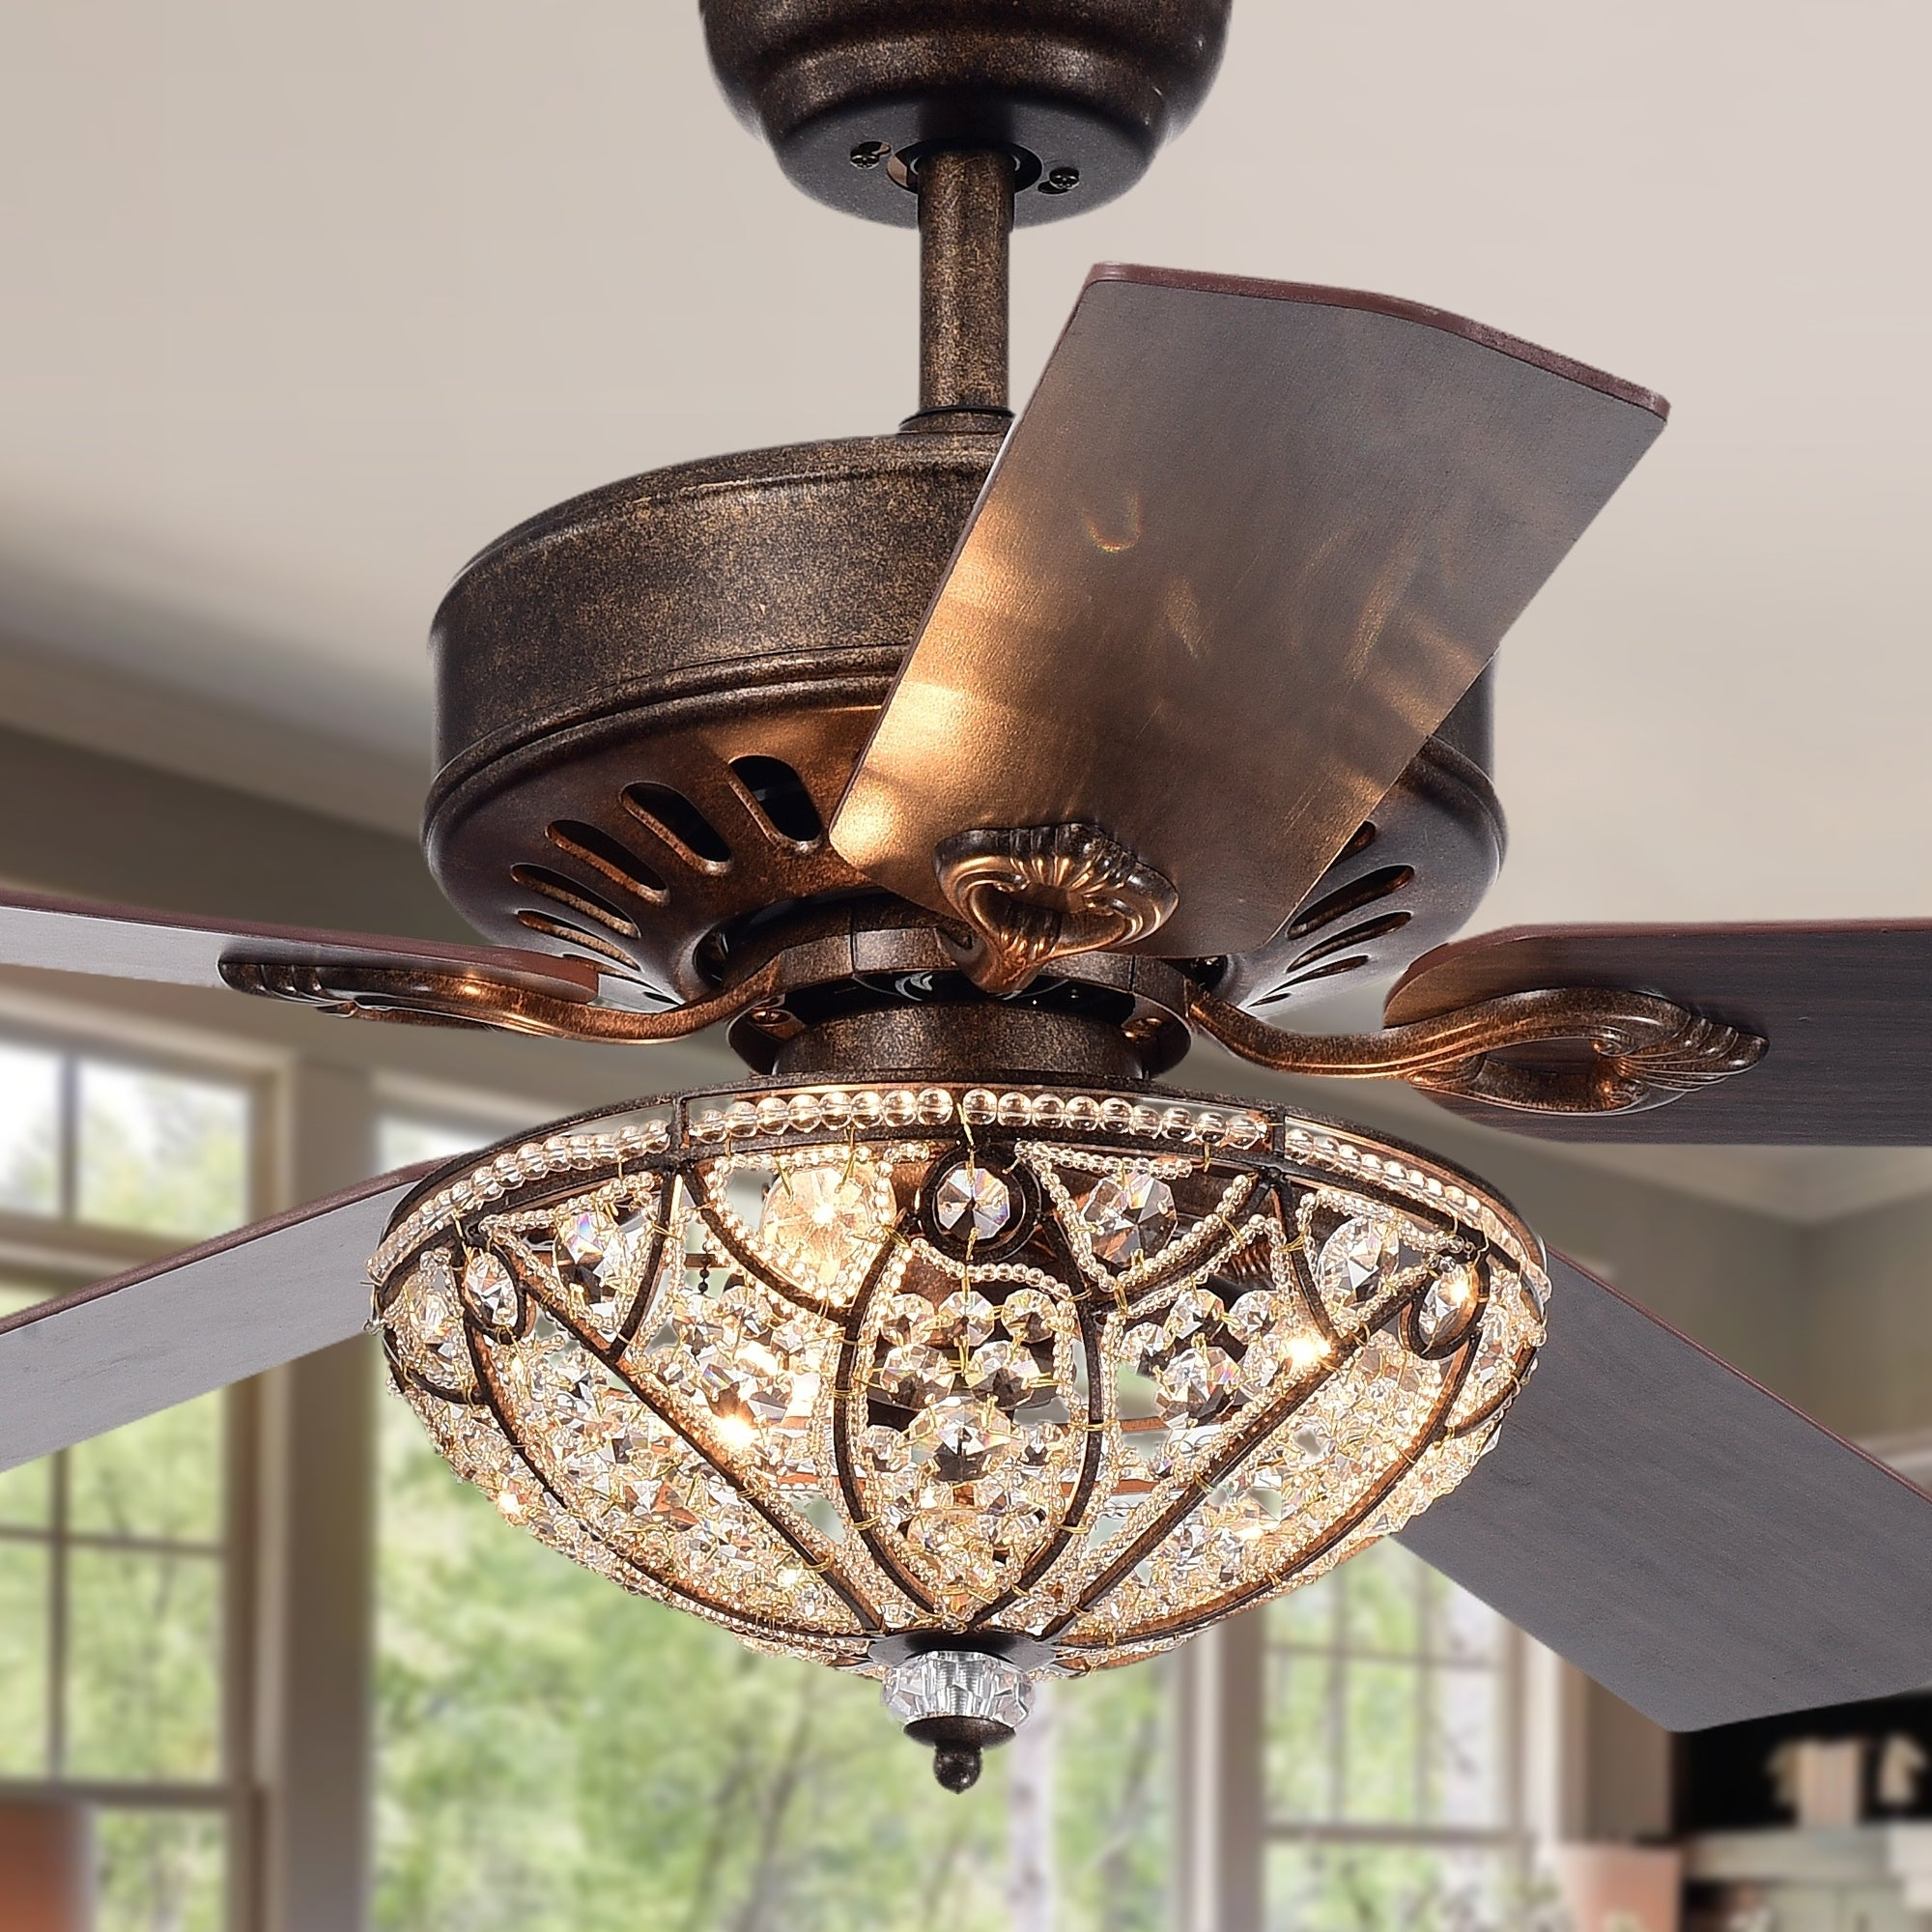 FansFind Accessories Deals Greatamp; Shopping Ceiling USGqpMzV